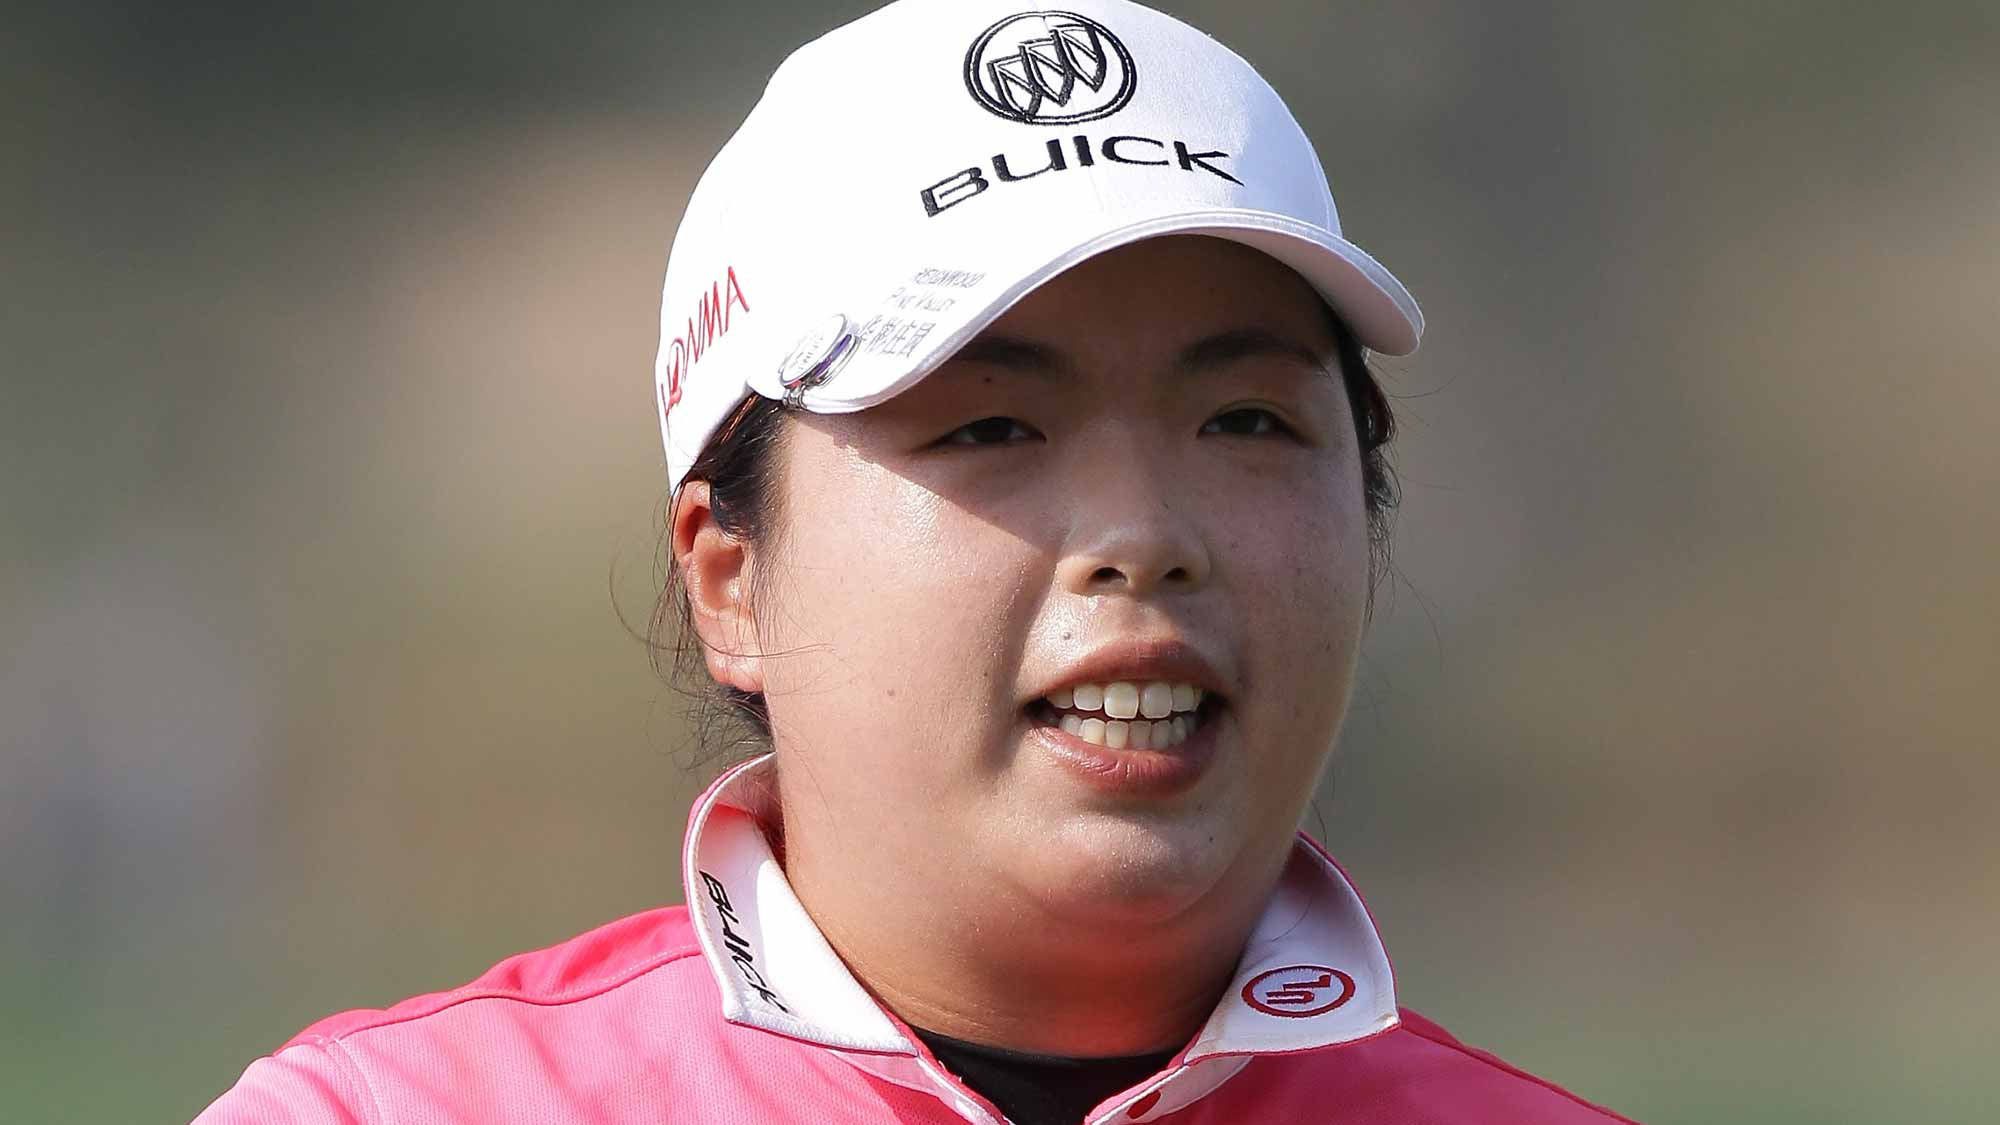 Shanshan Feng of China reacts after a putt on the 18th green during the first round of LPGA KEB Hana Bank Championship at Sky 72 Golf Club Ocean Course